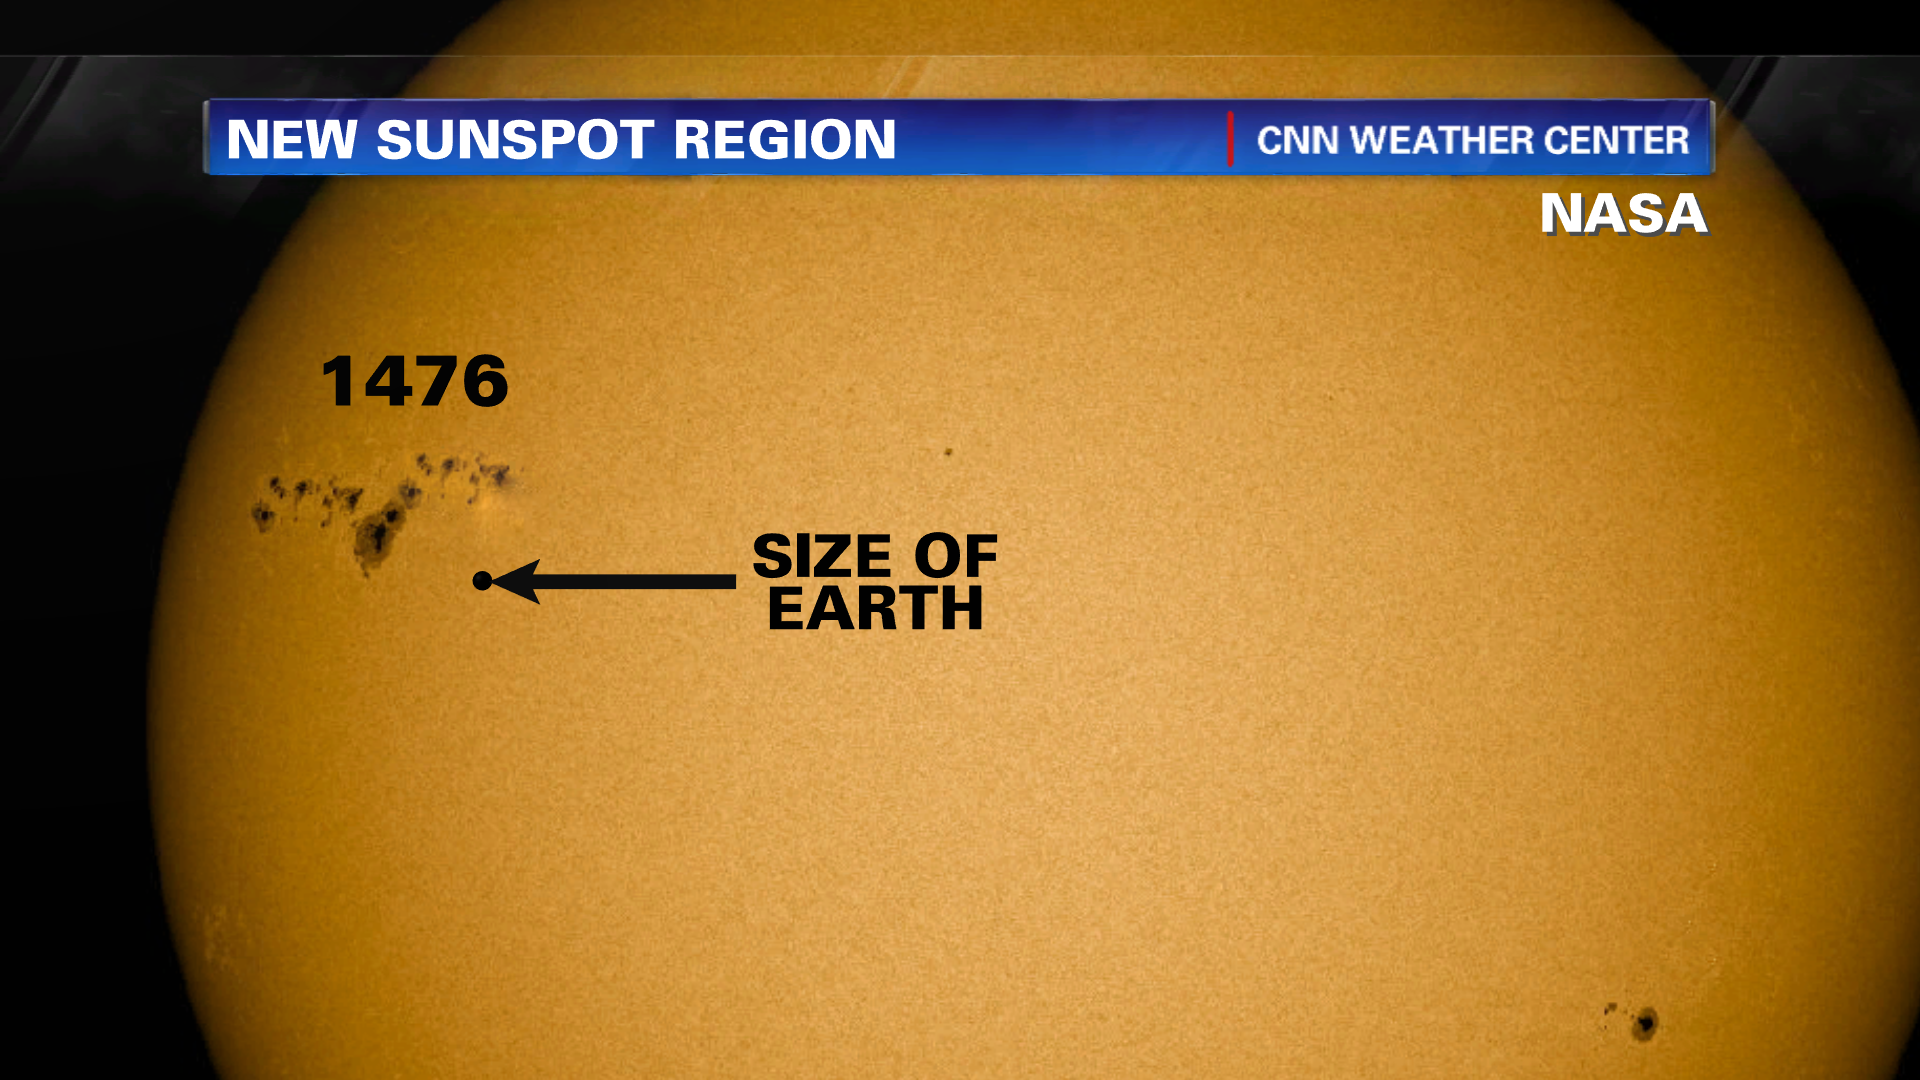 http://cnnweathercenter.files.wordpress.com/2012/05/sm-solar-new-sunspot-region.png